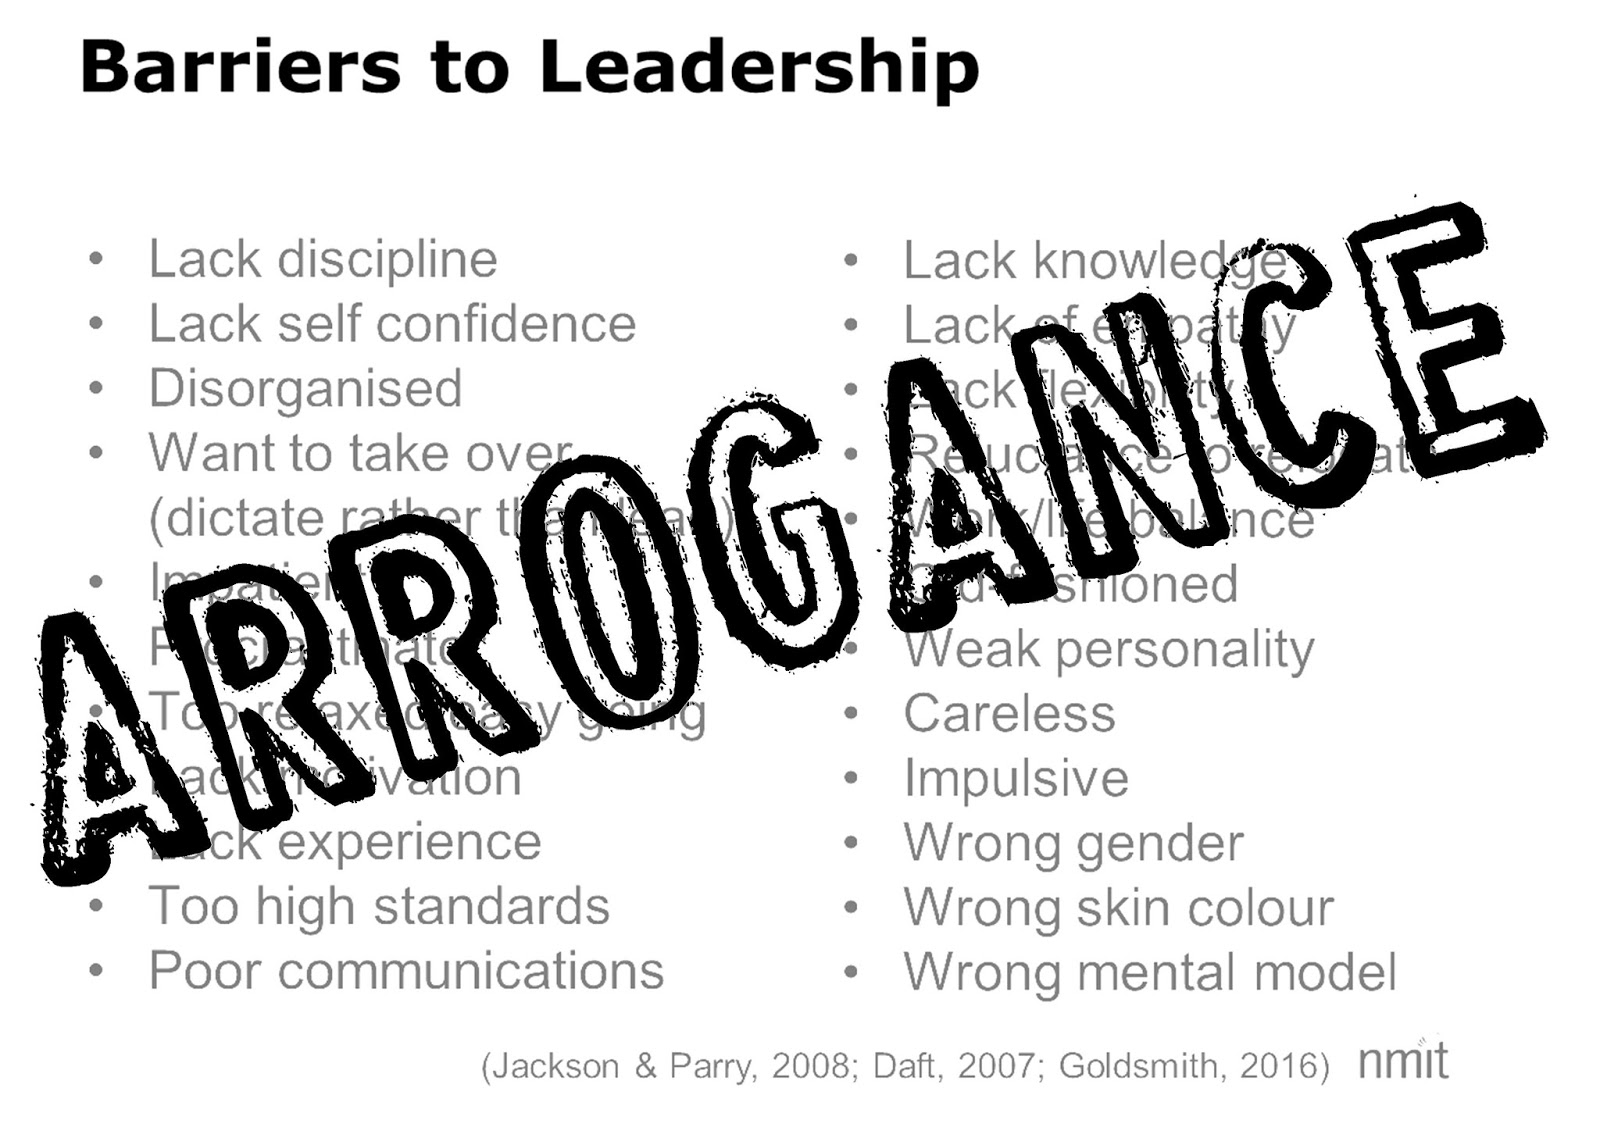 Acts Of Leadership Arrogance A Barrier To Leadership